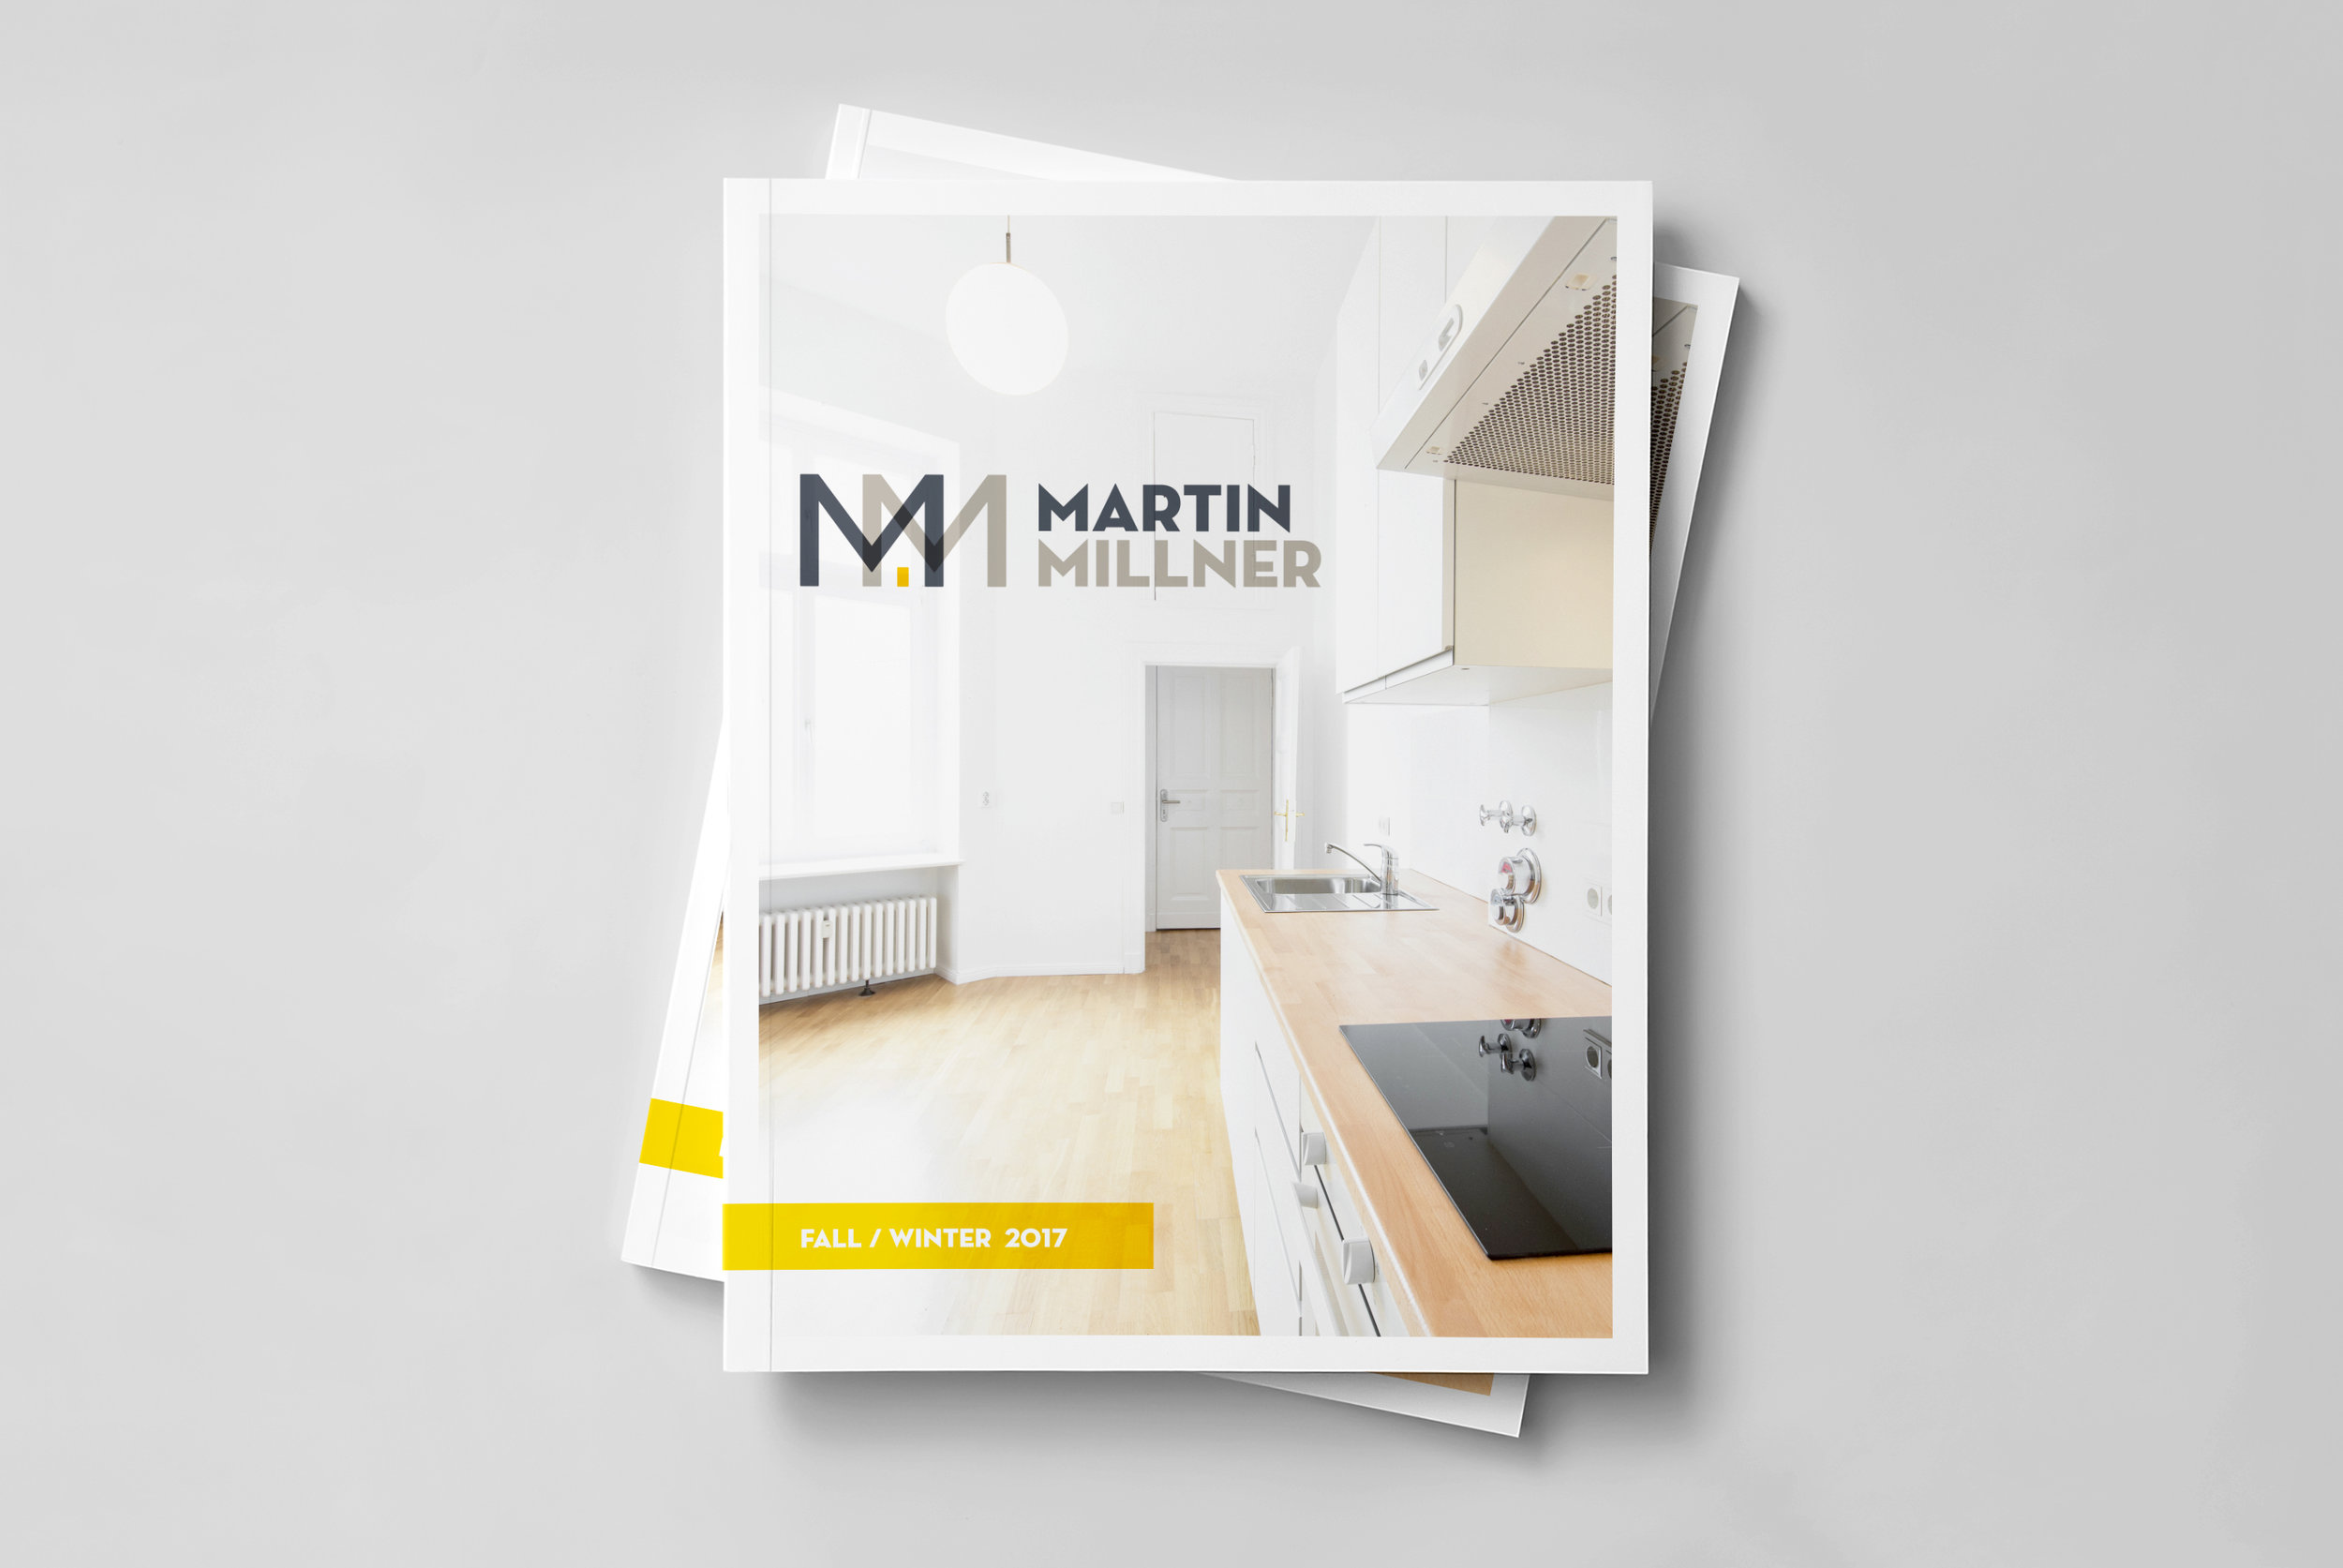 Martin Millner client work was created for FZ Creative